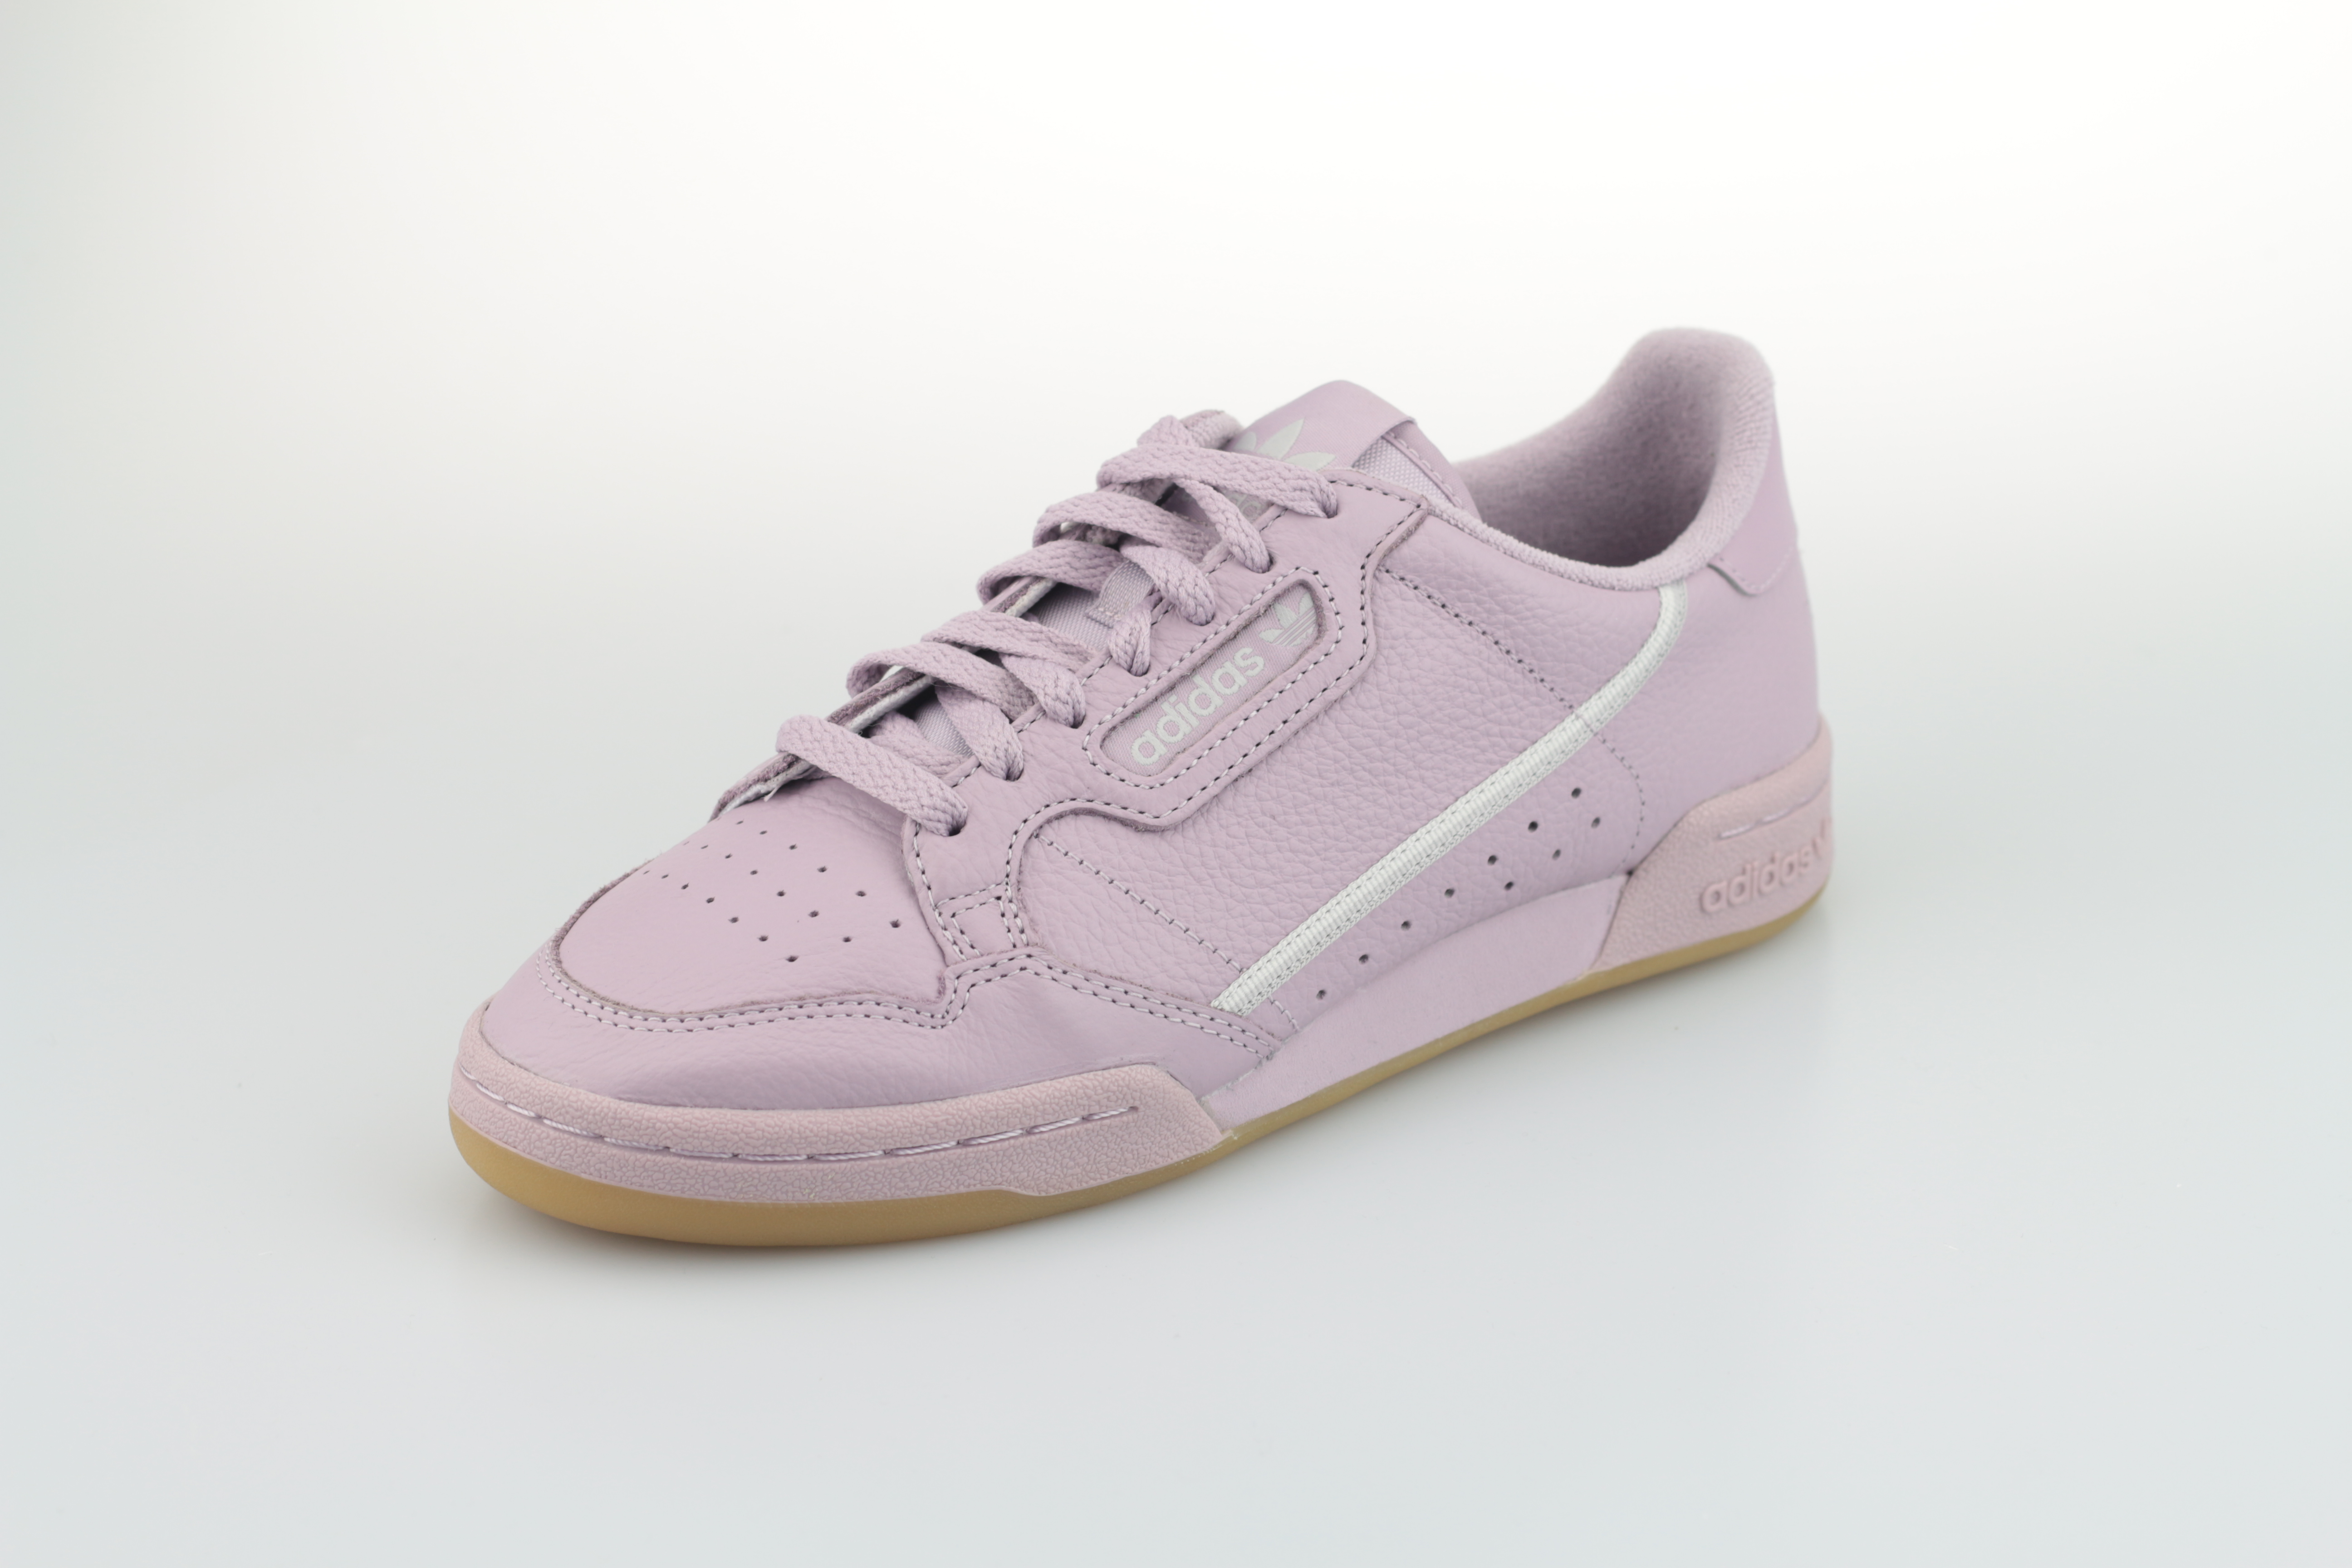 adidas Originals Continental 80 W Off White Orchid Tint Soft Vision